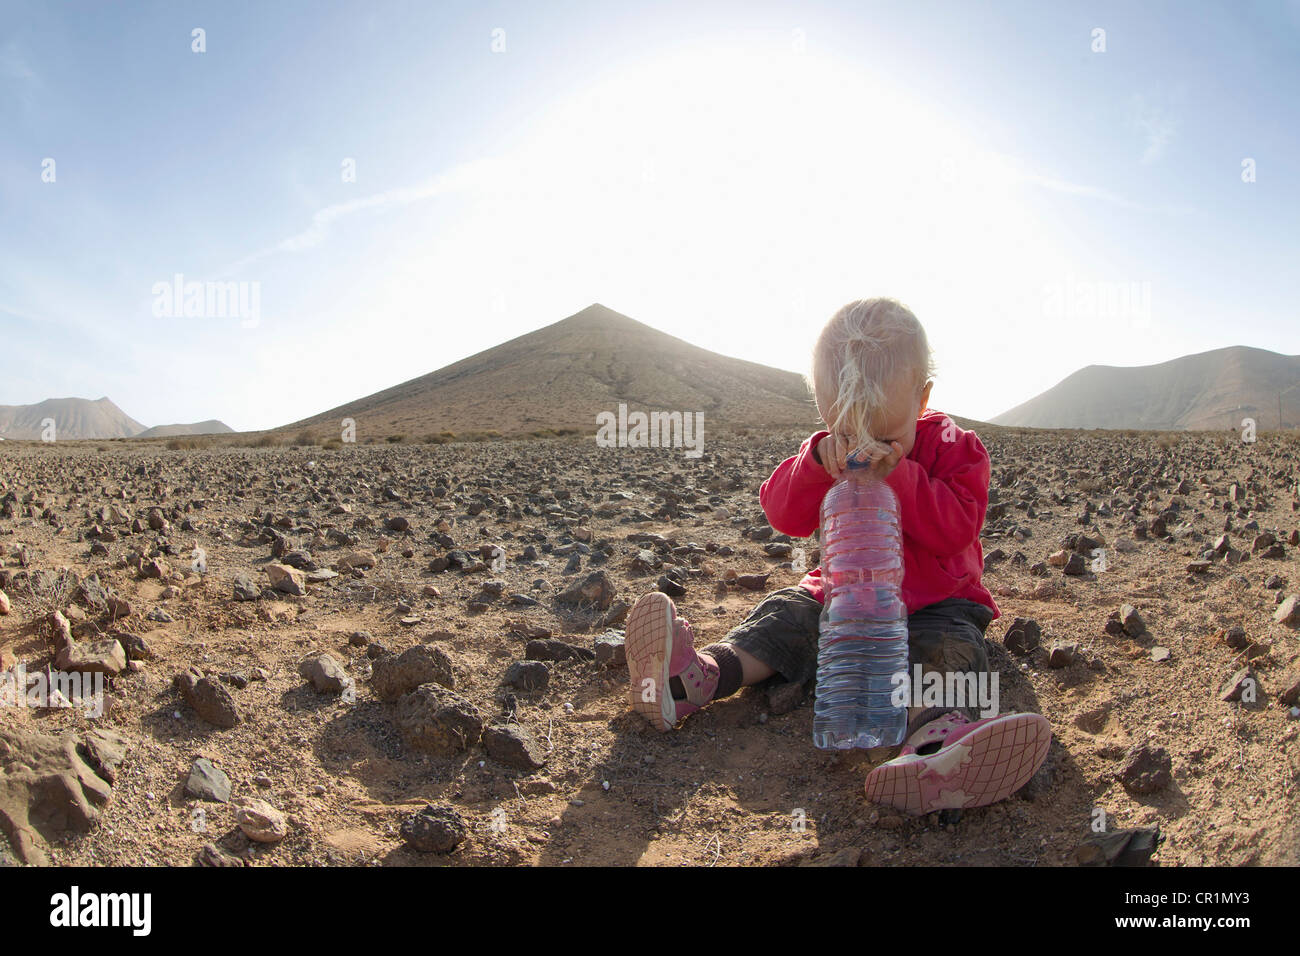 Toddler with bottle of water in desert - Stock Image